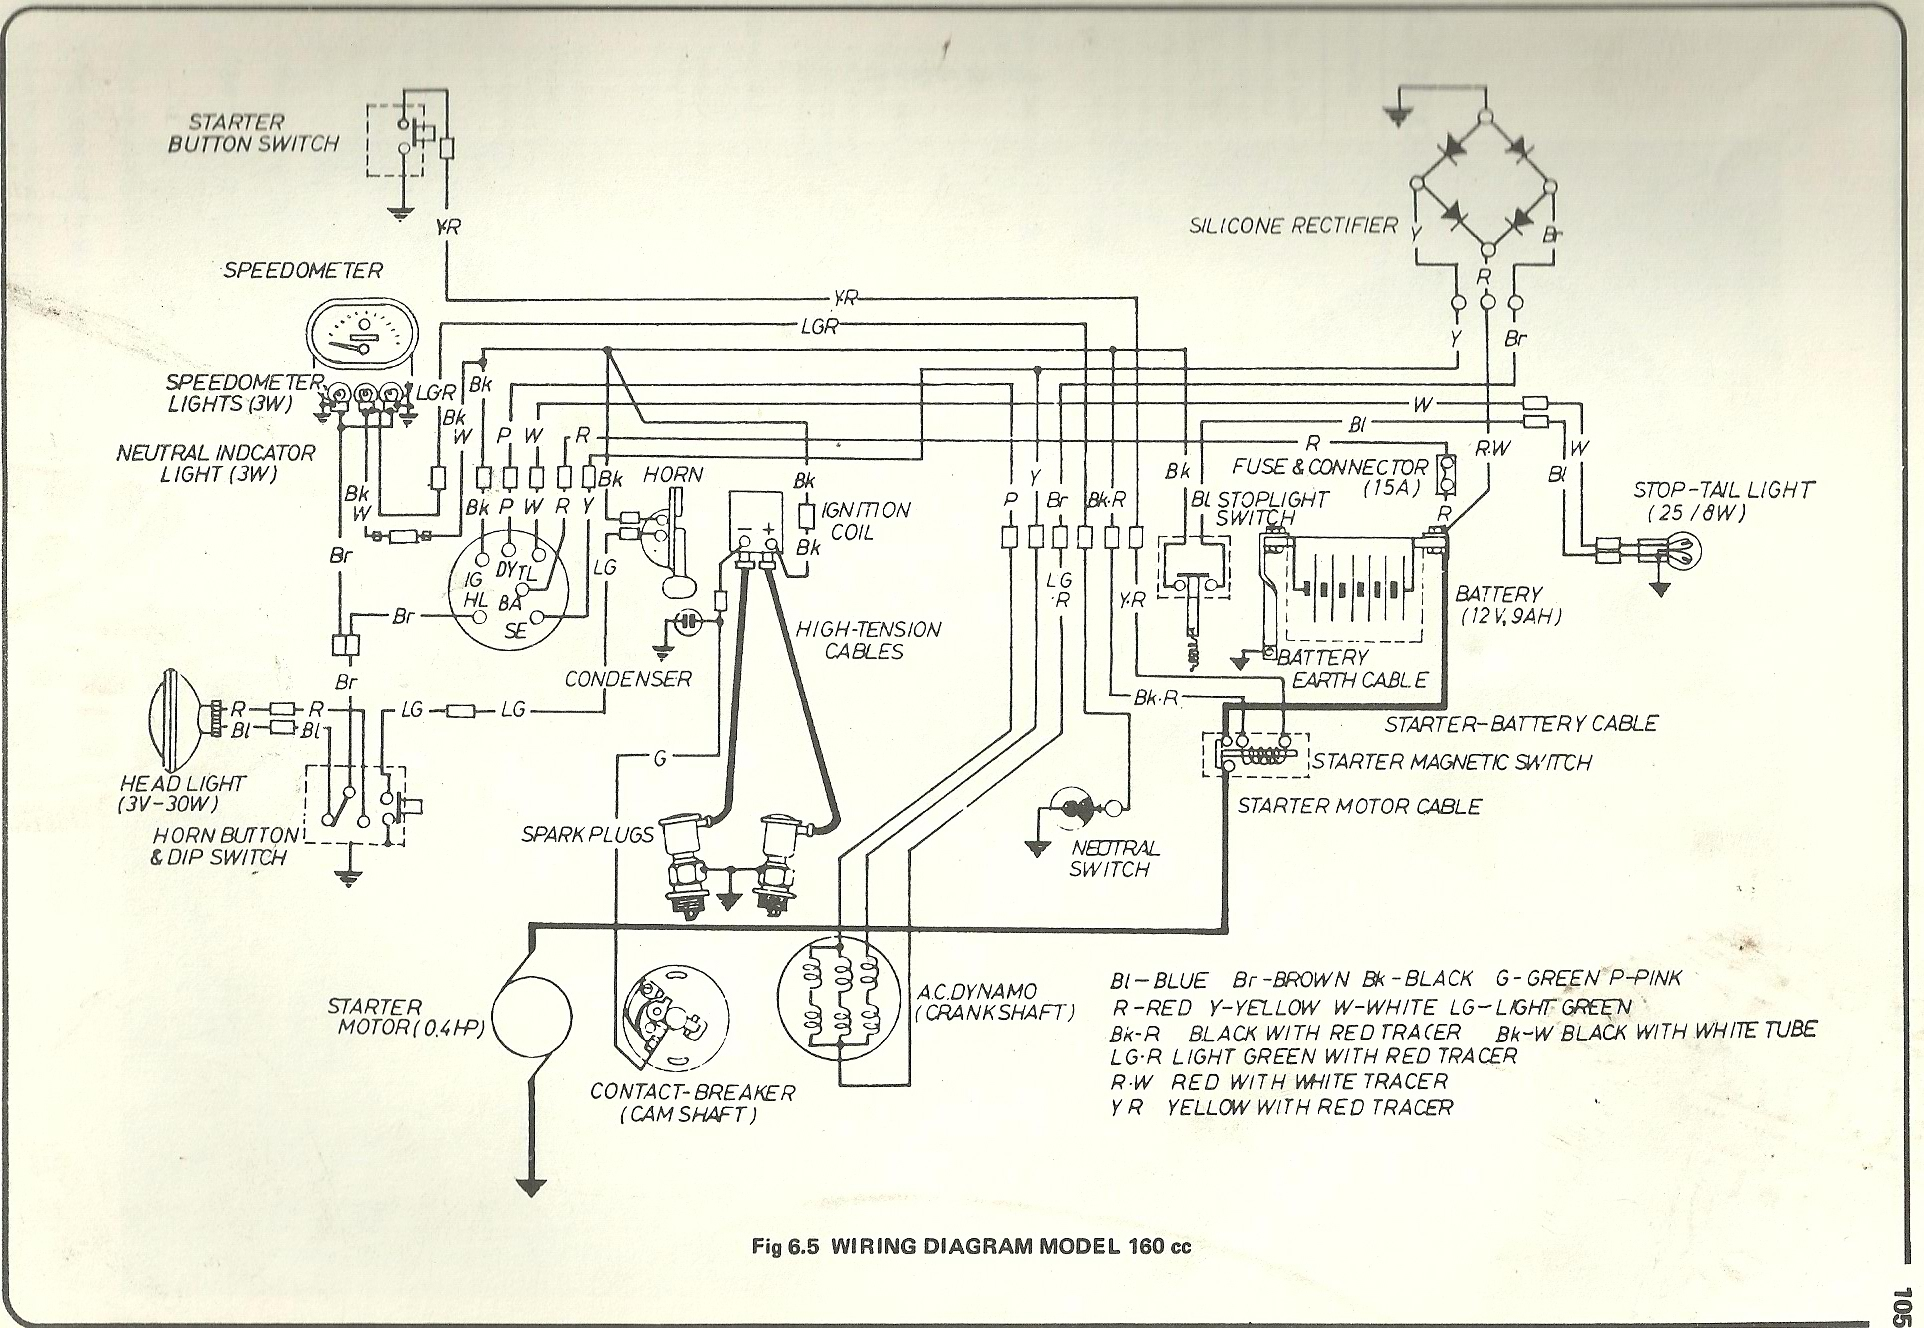 1965 Honda Cb160 Wiring Diagram Electrical Cb175 Explained Diagrams Rh Dmdelectro Co 1966 Specs